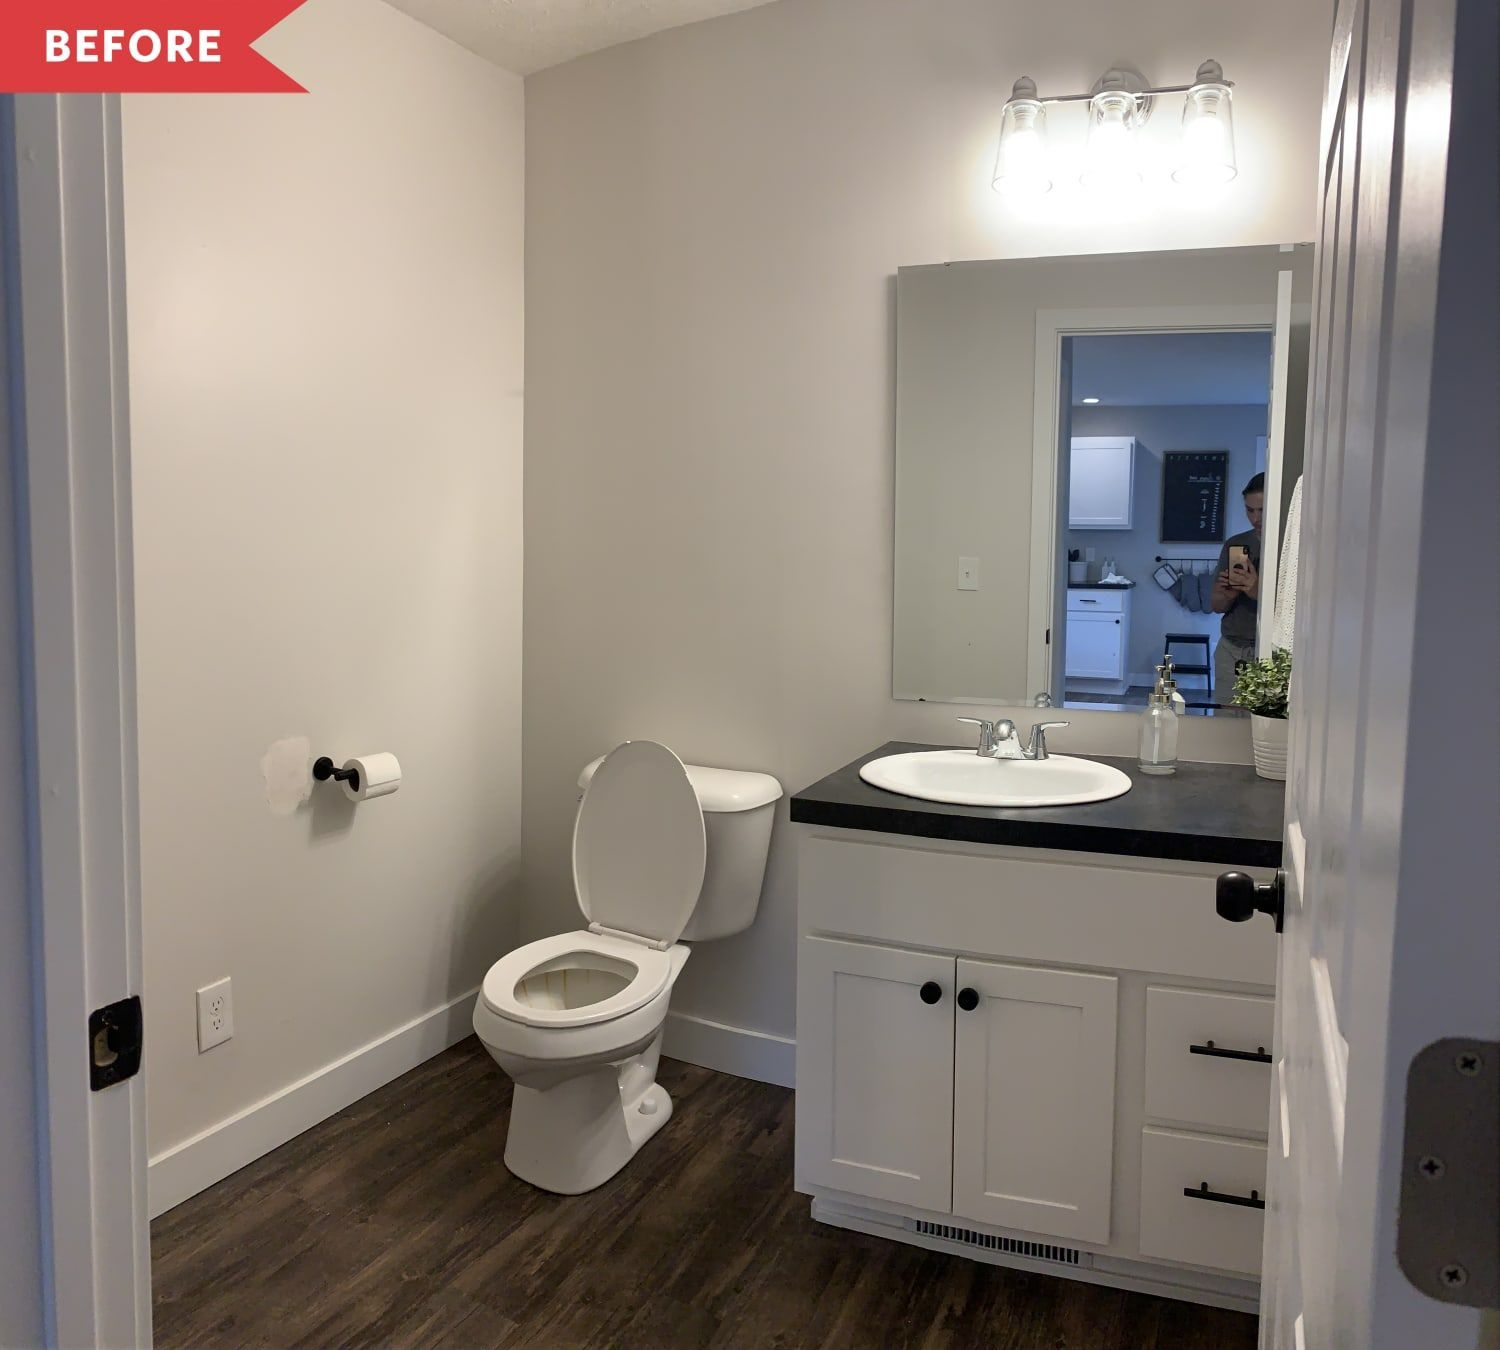 Before And After A 200 Bathroom Transformation Done In A Weekend Bathroom Transformation Weekend In 2020 Bathroom Transformation Bathroom Decor Bath Makeover